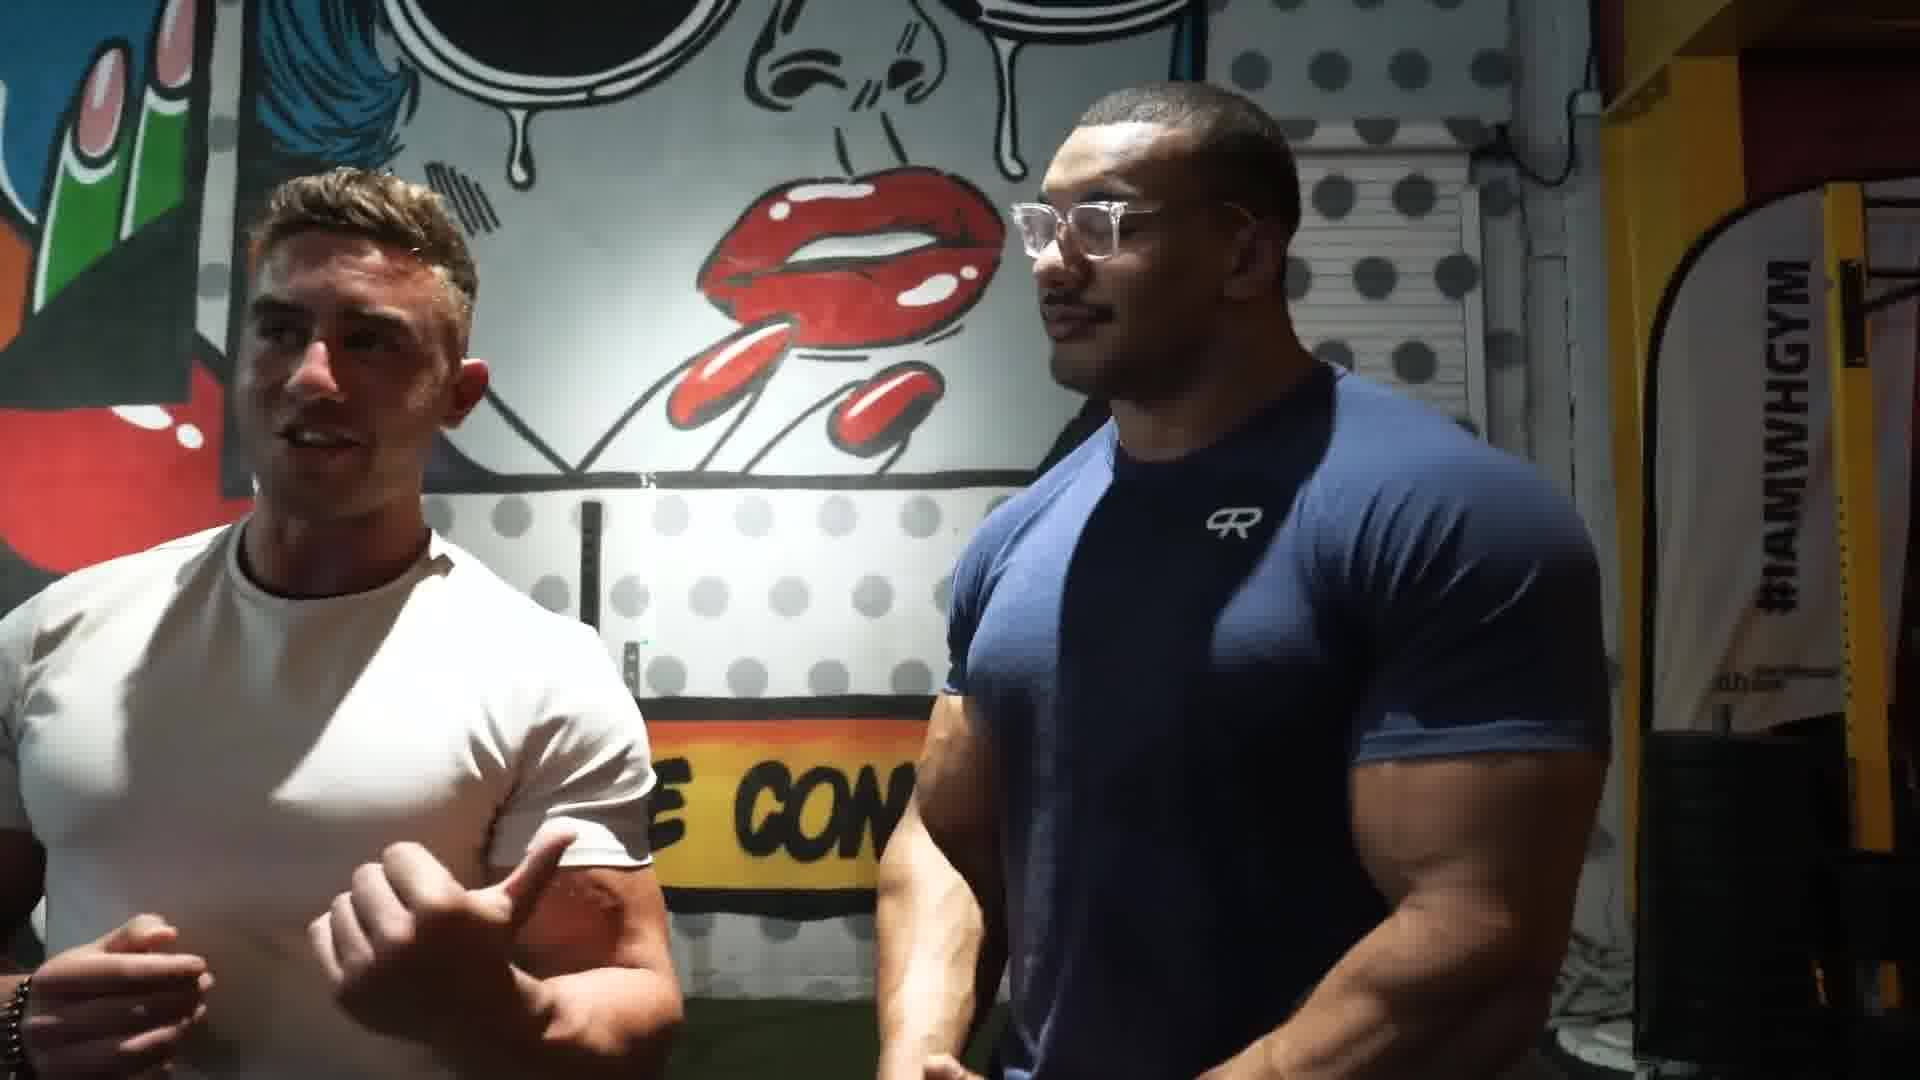 Zac Perna   Strongman Workout with Larry Wheels Perna Bros in 1920x1080